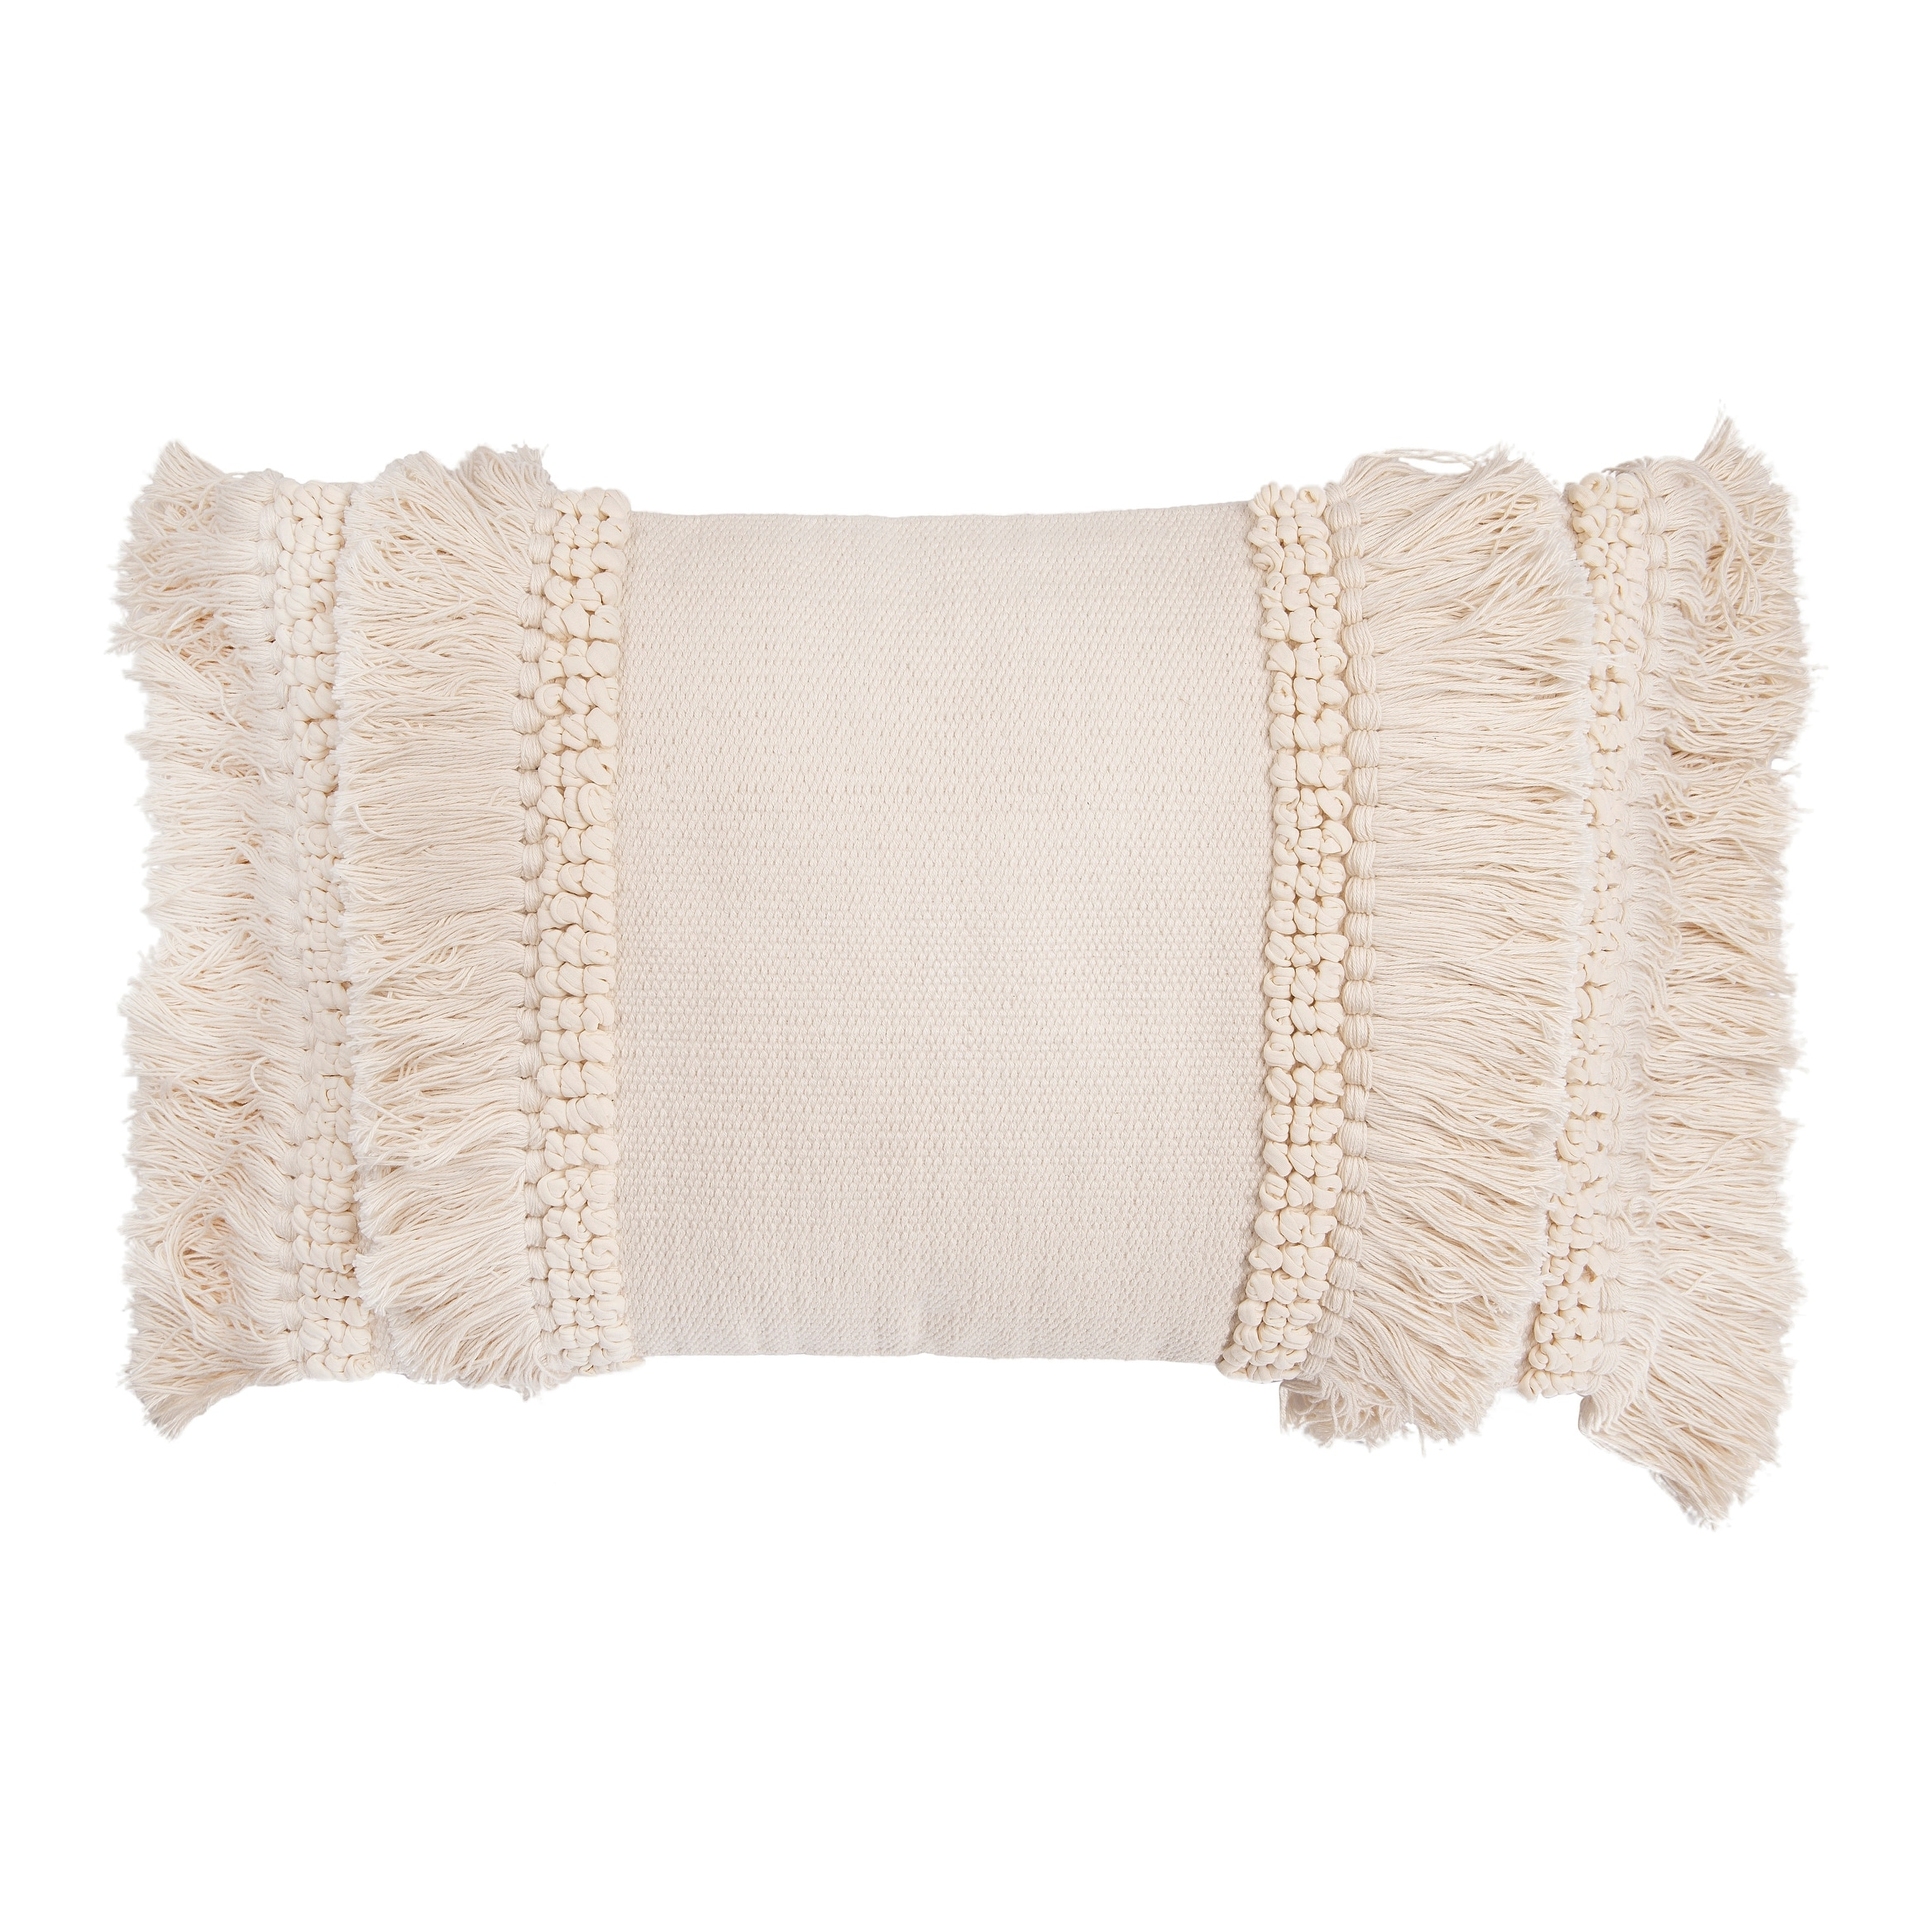 cream cotton chenille woven lumbar pillow with long fringe